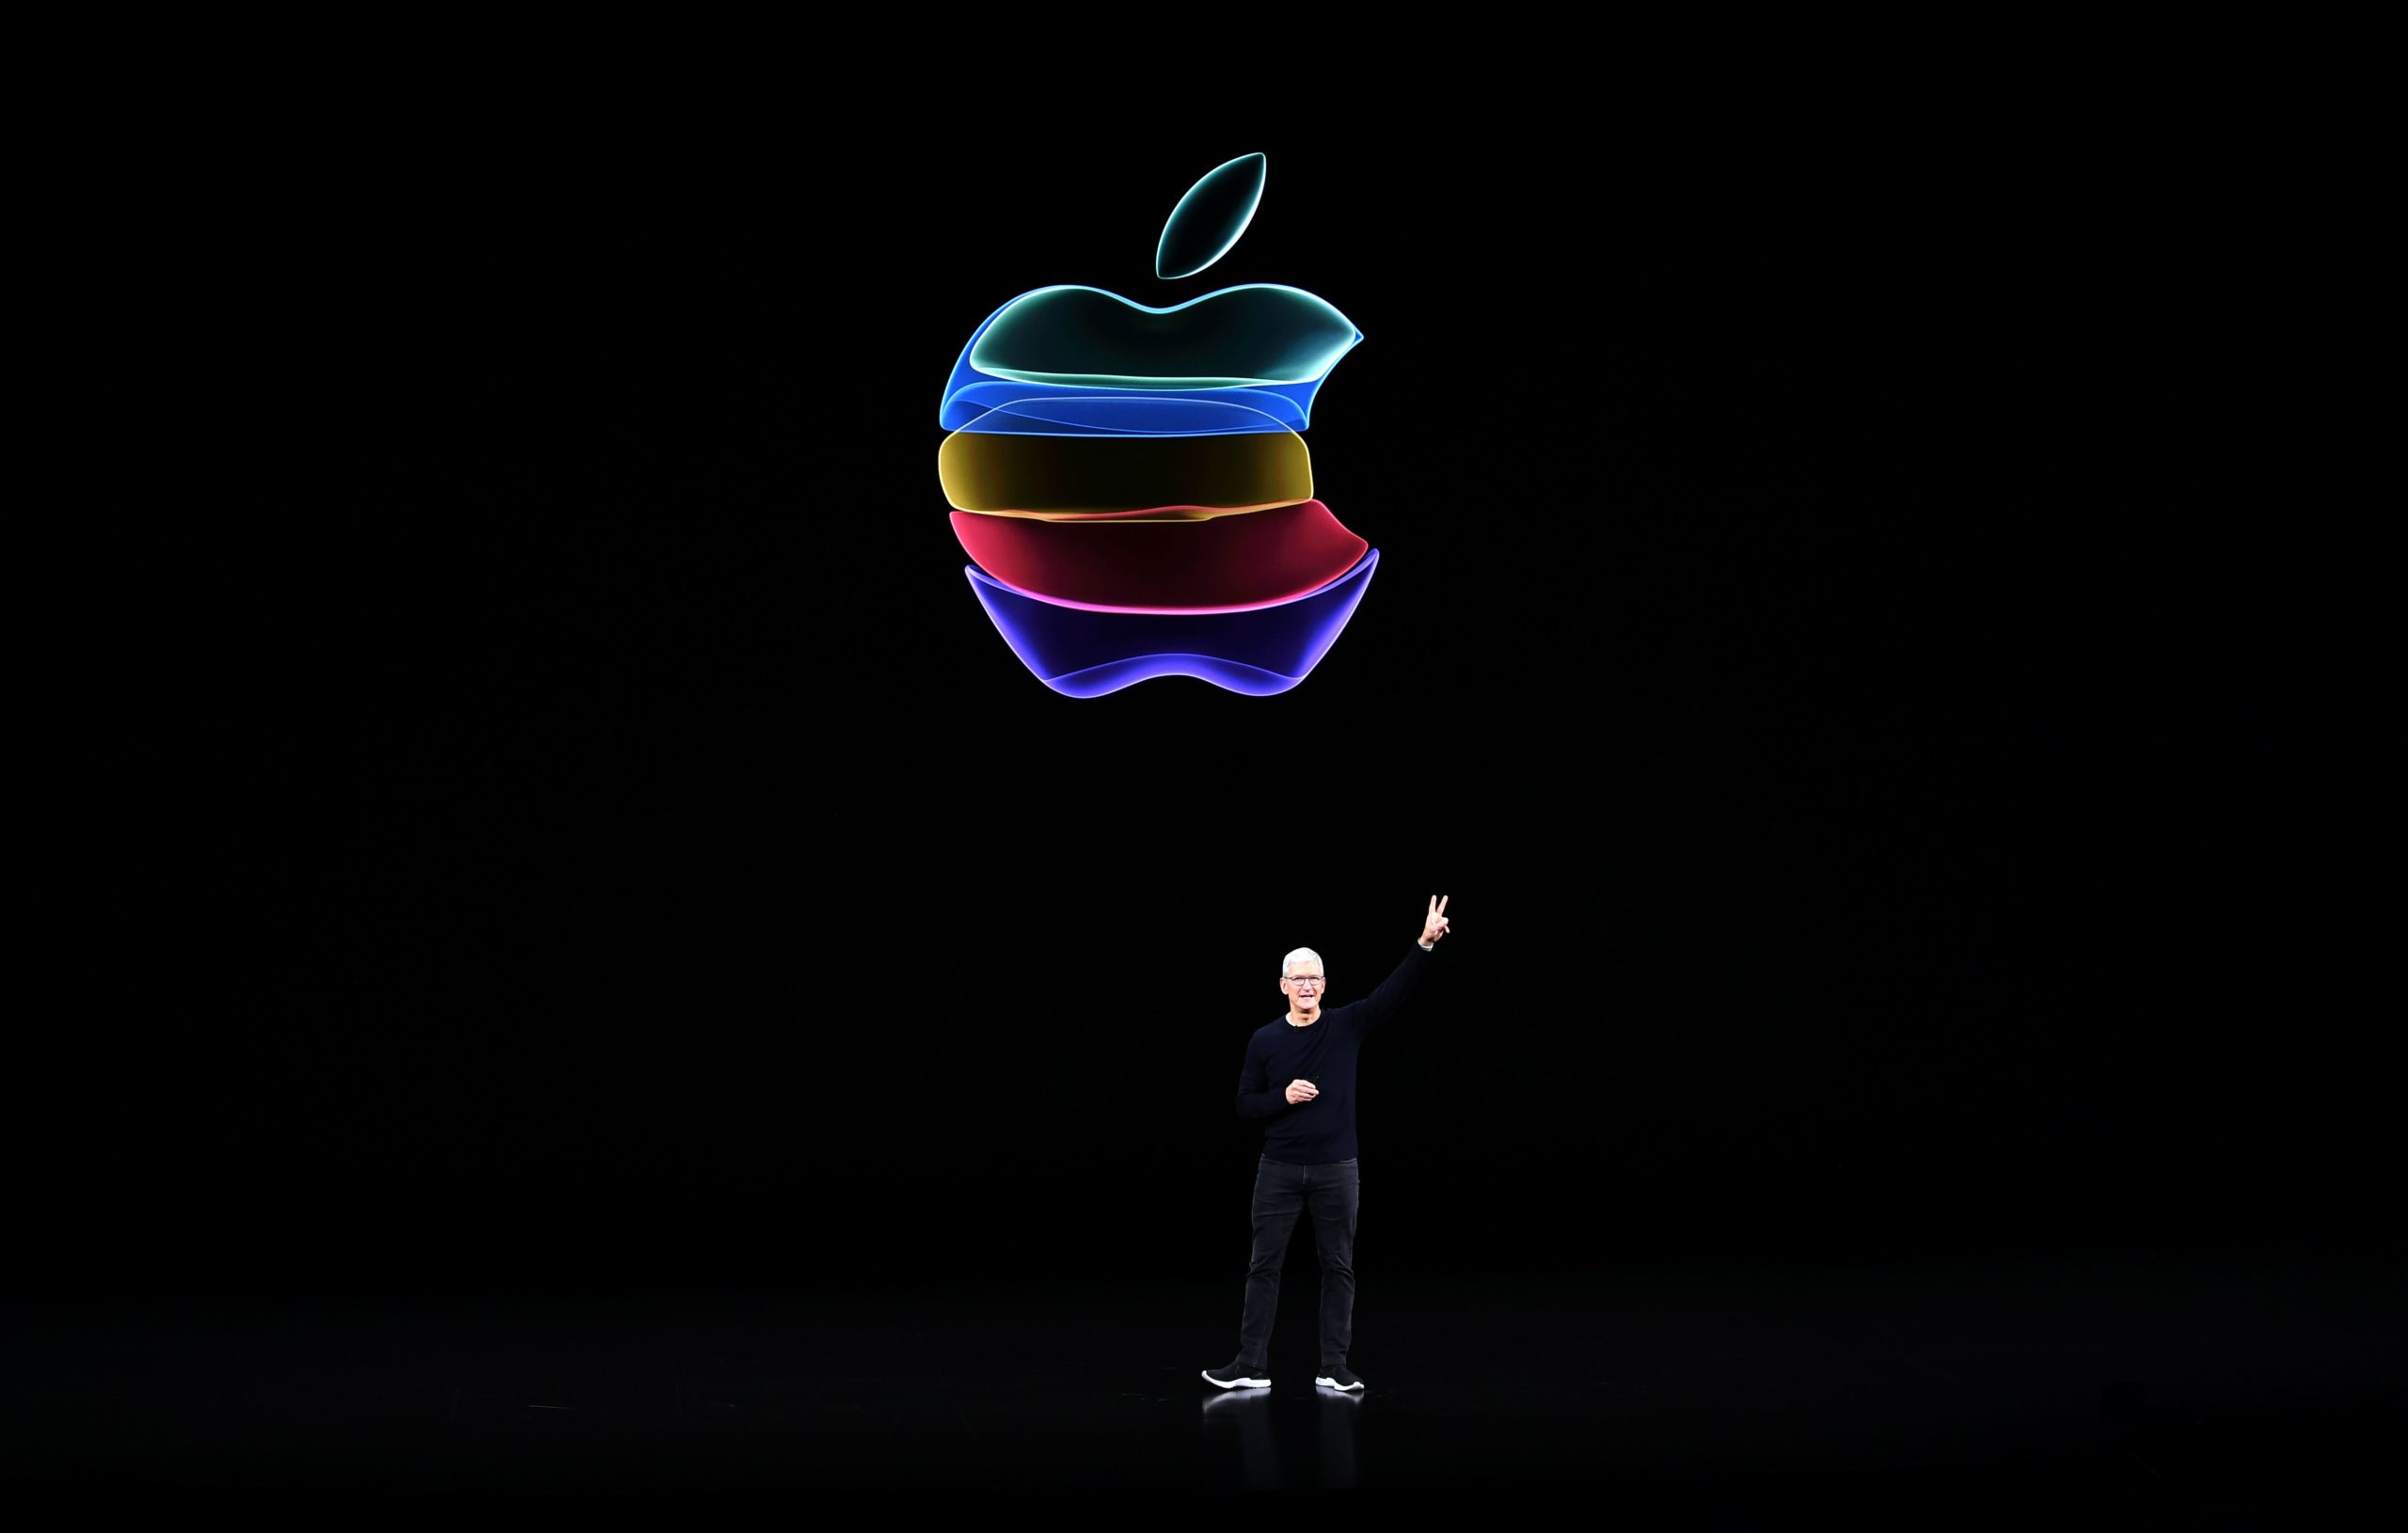 Apple CEO Tim Cook speaks on-stage during a product launch event at Apple's headquarters in Cupertino, California on Sept. 10, 2019. (Josh Edelson/AFP via Getty Images)